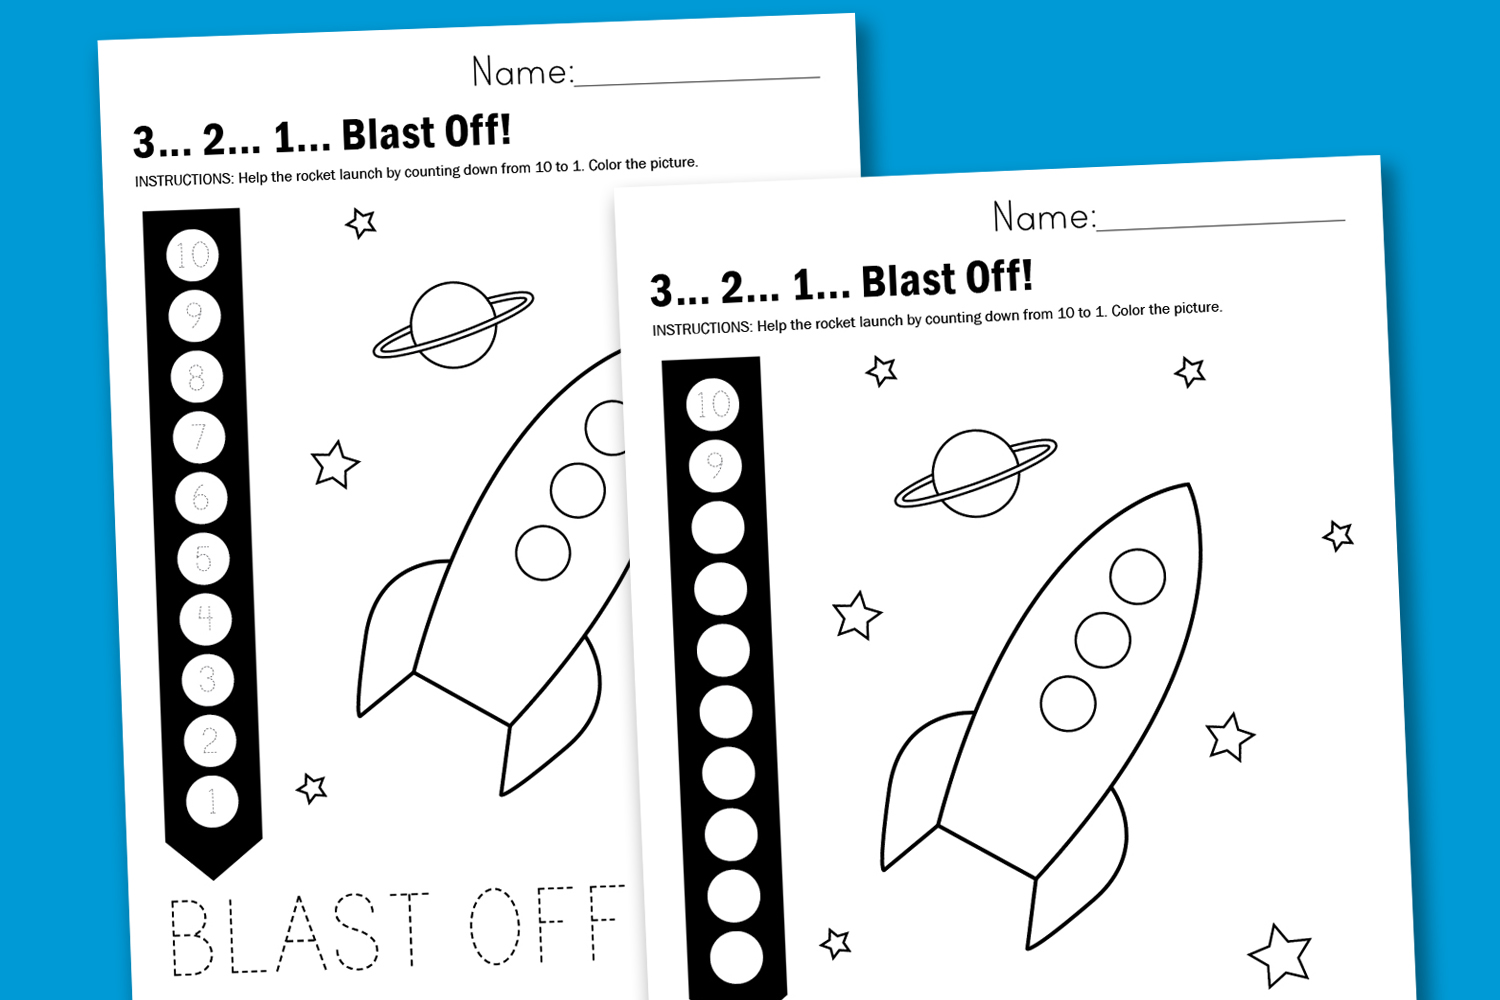 Worksheet Wednesday 3 2 1 Blast Off